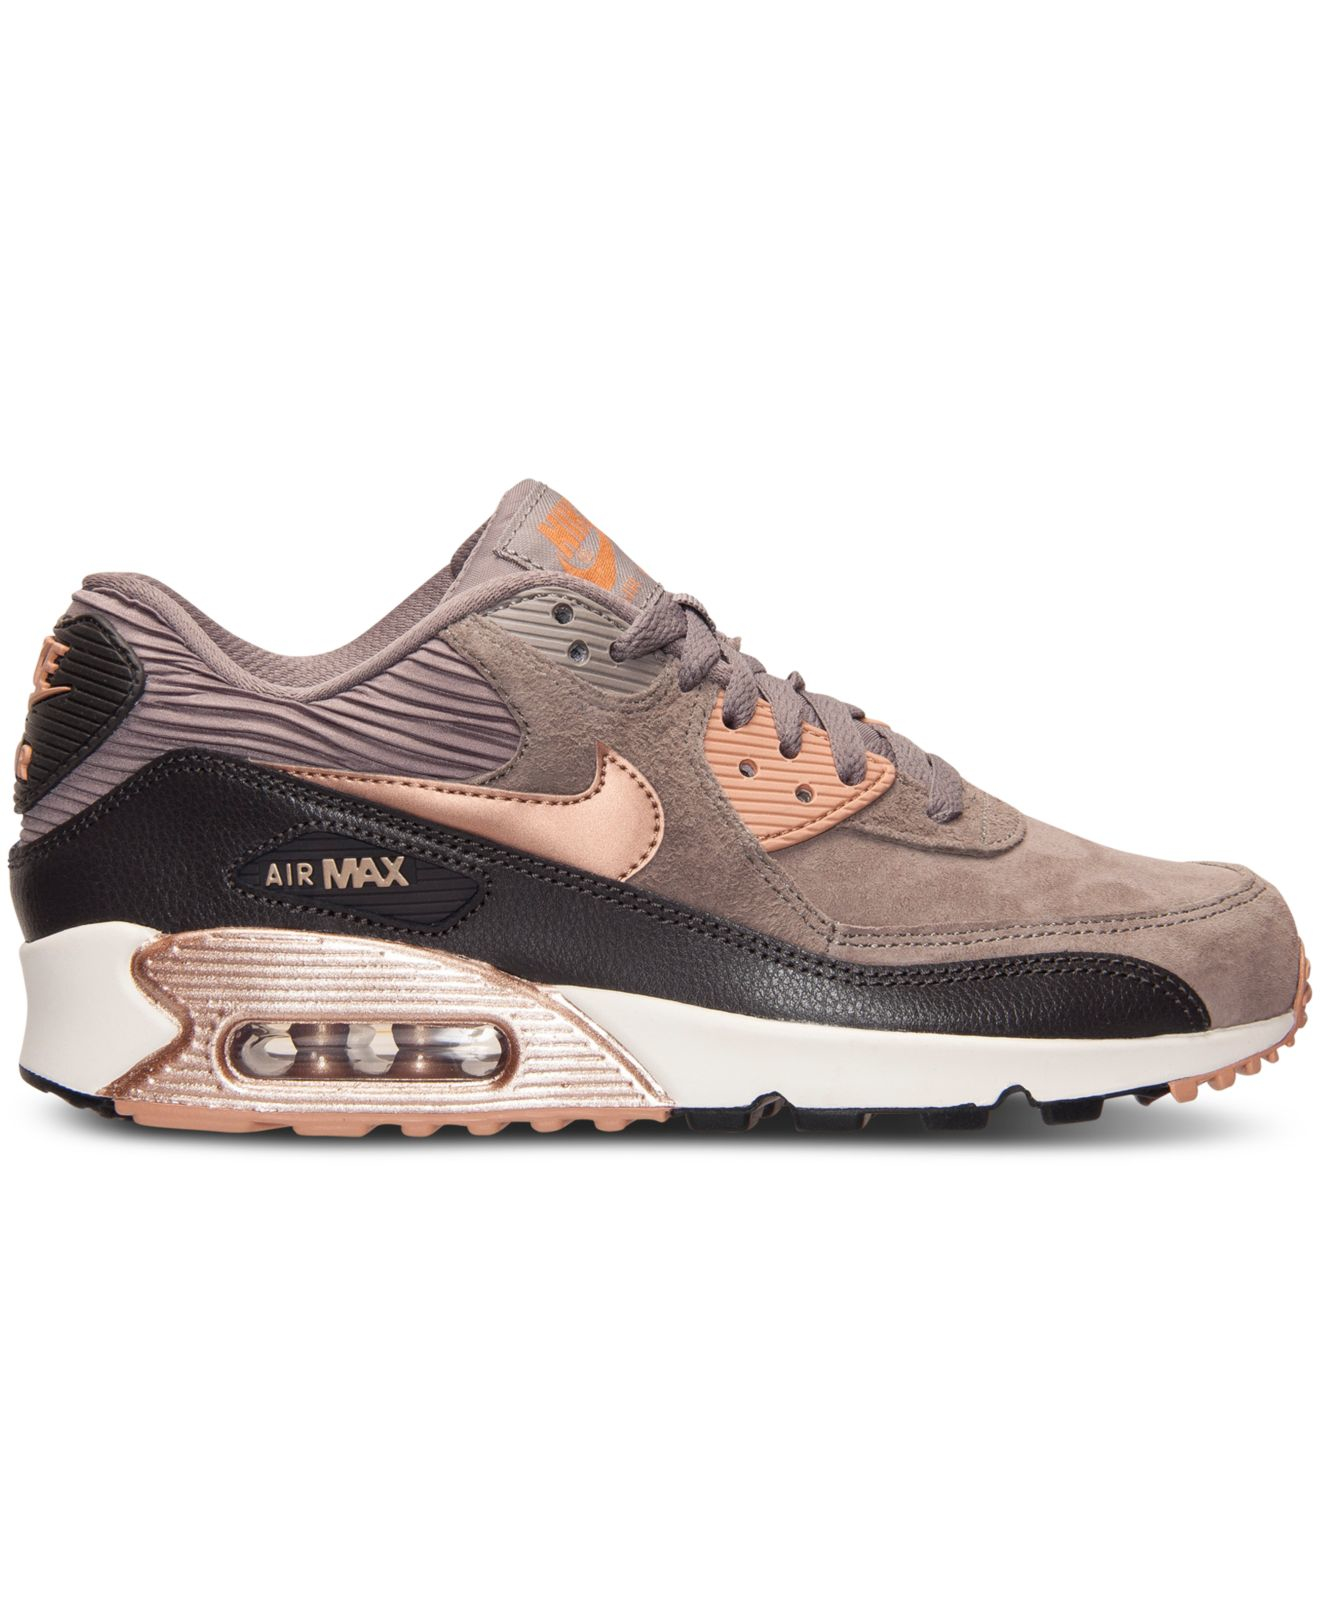 nike women 39 s air max 90 leather running sneakers from. Black Bedroom Furniture Sets. Home Design Ideas